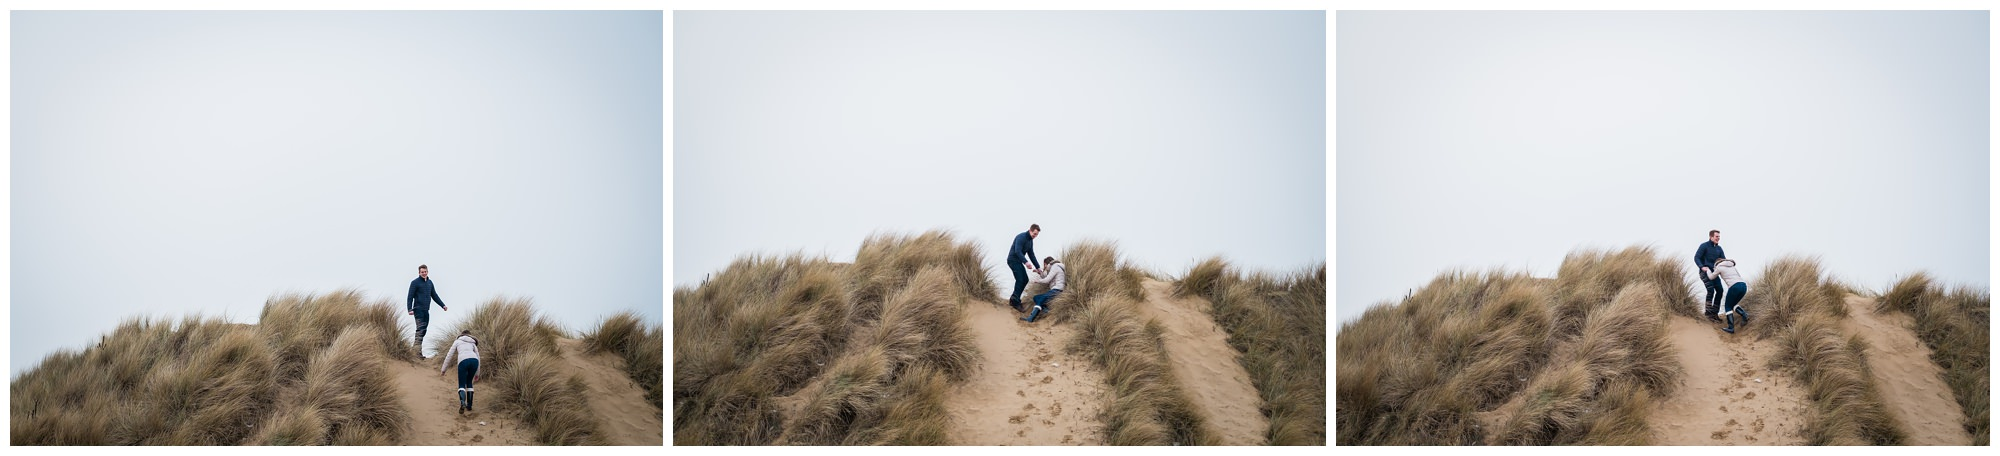 bride and groom to be climbing sand dunes